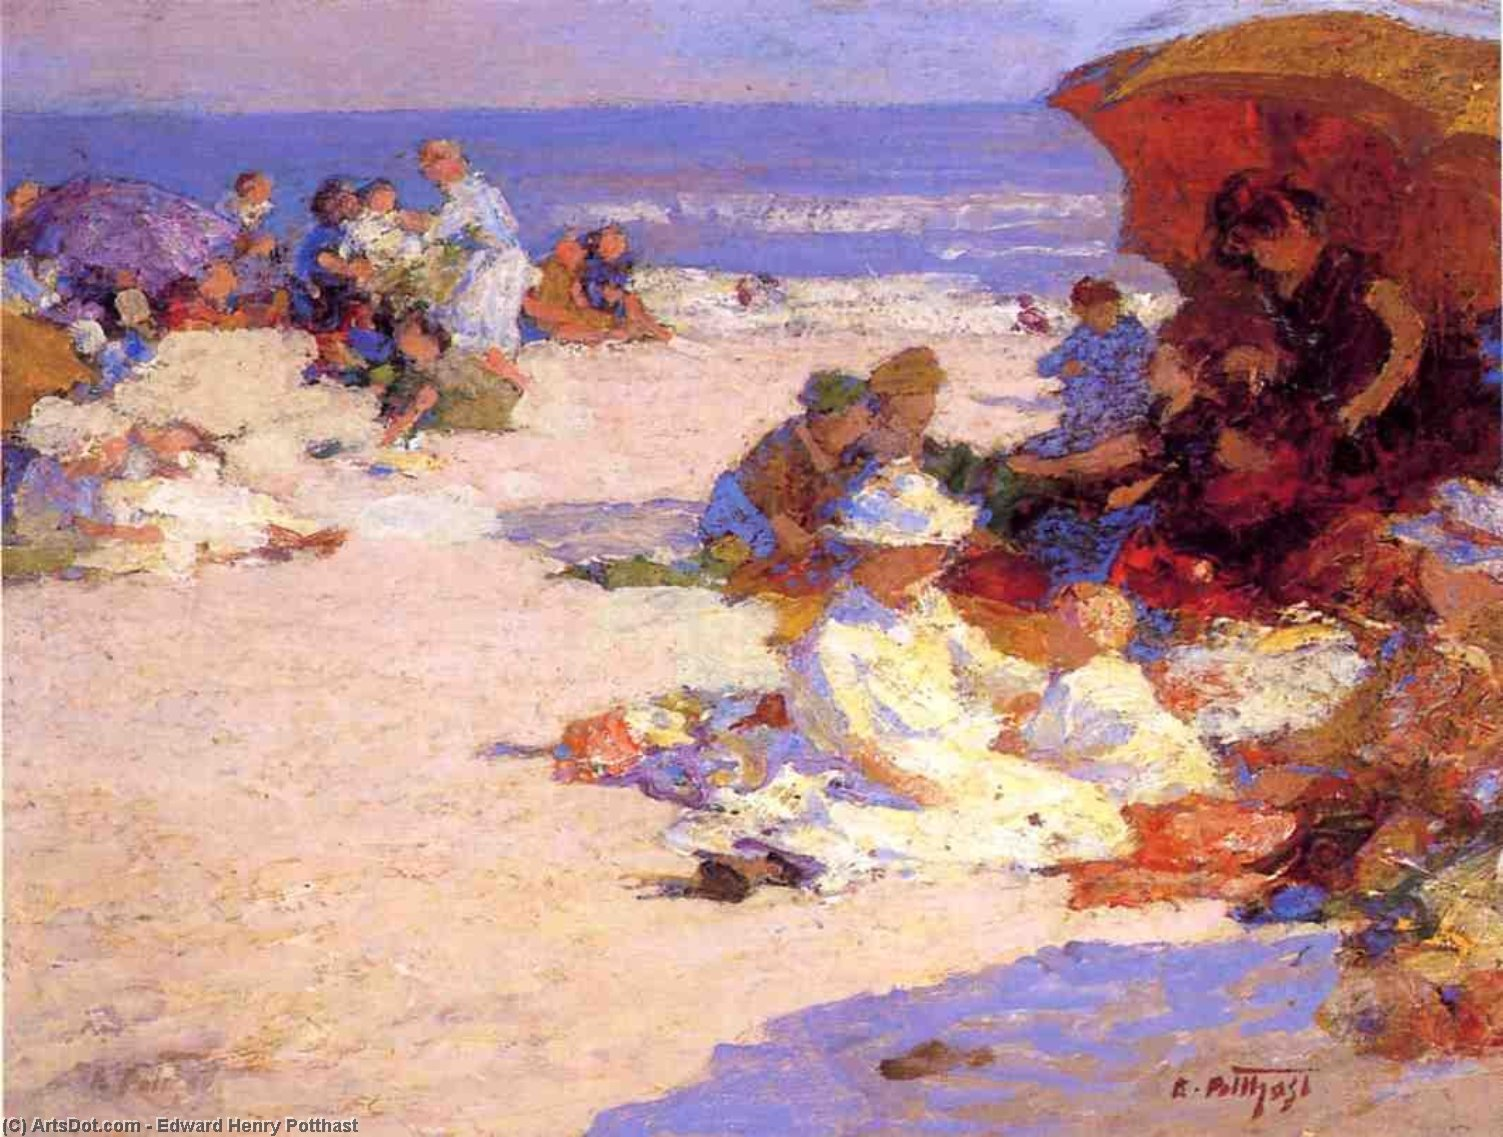 Picknickers on the Beach by Edward Henry Potthast (1857-1927, United States) | Art Reproductions Edward Henry Potthast | ArtsDot.com